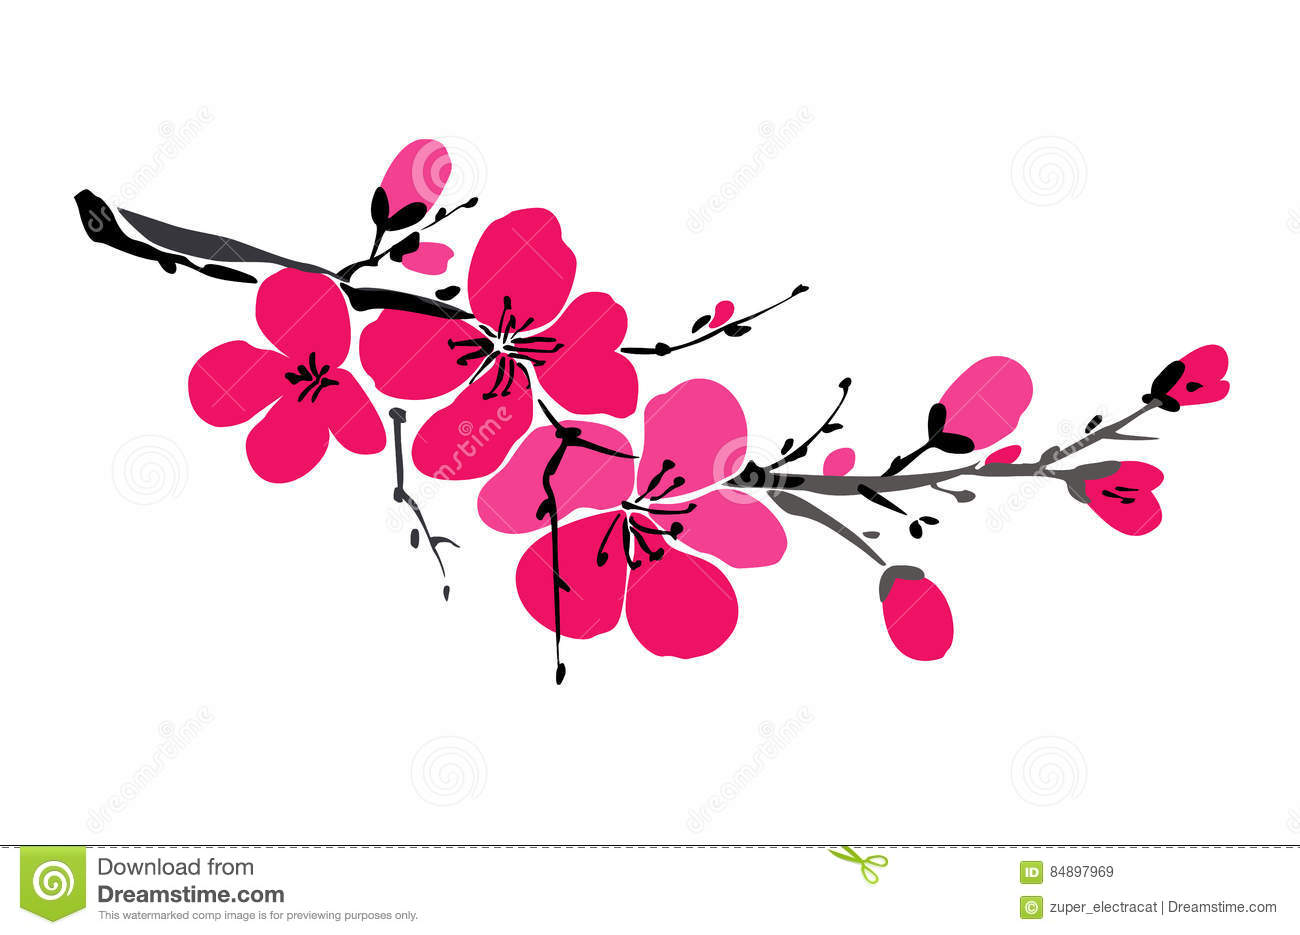 Sakura branch isolated on white background. Spring background. Japanese cherry blossom. Blooming flowers